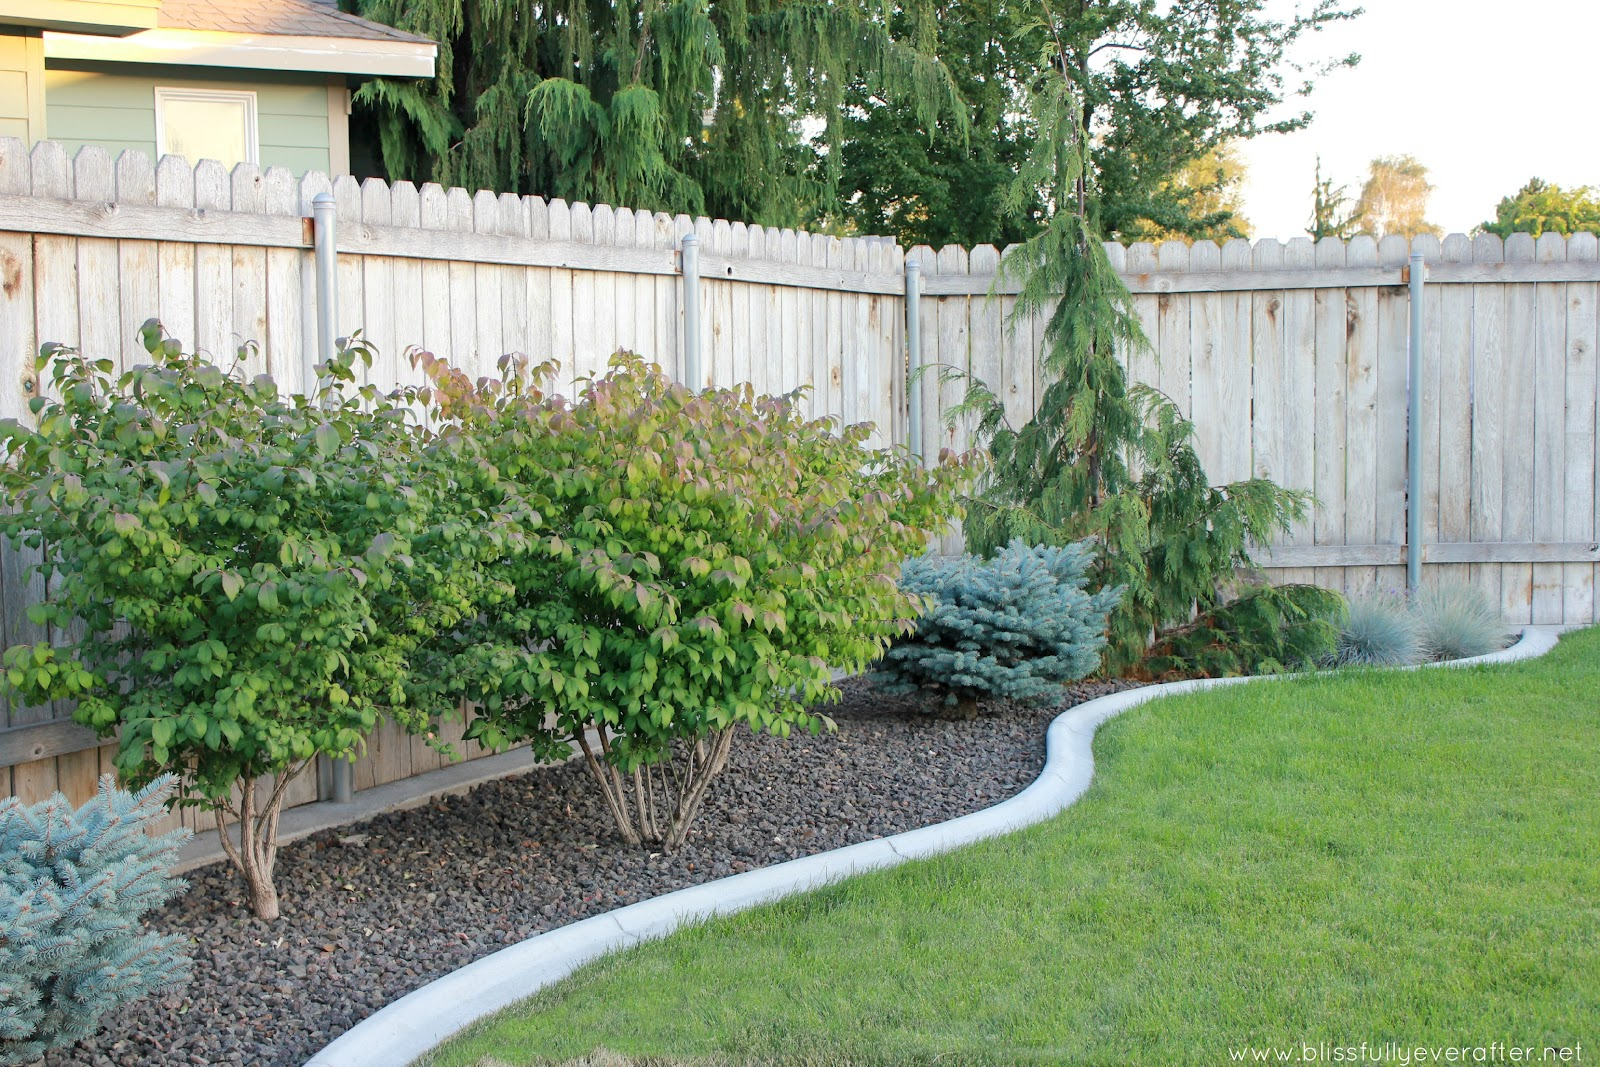 Yes landscaping Custom Front yard landscaping ideas for